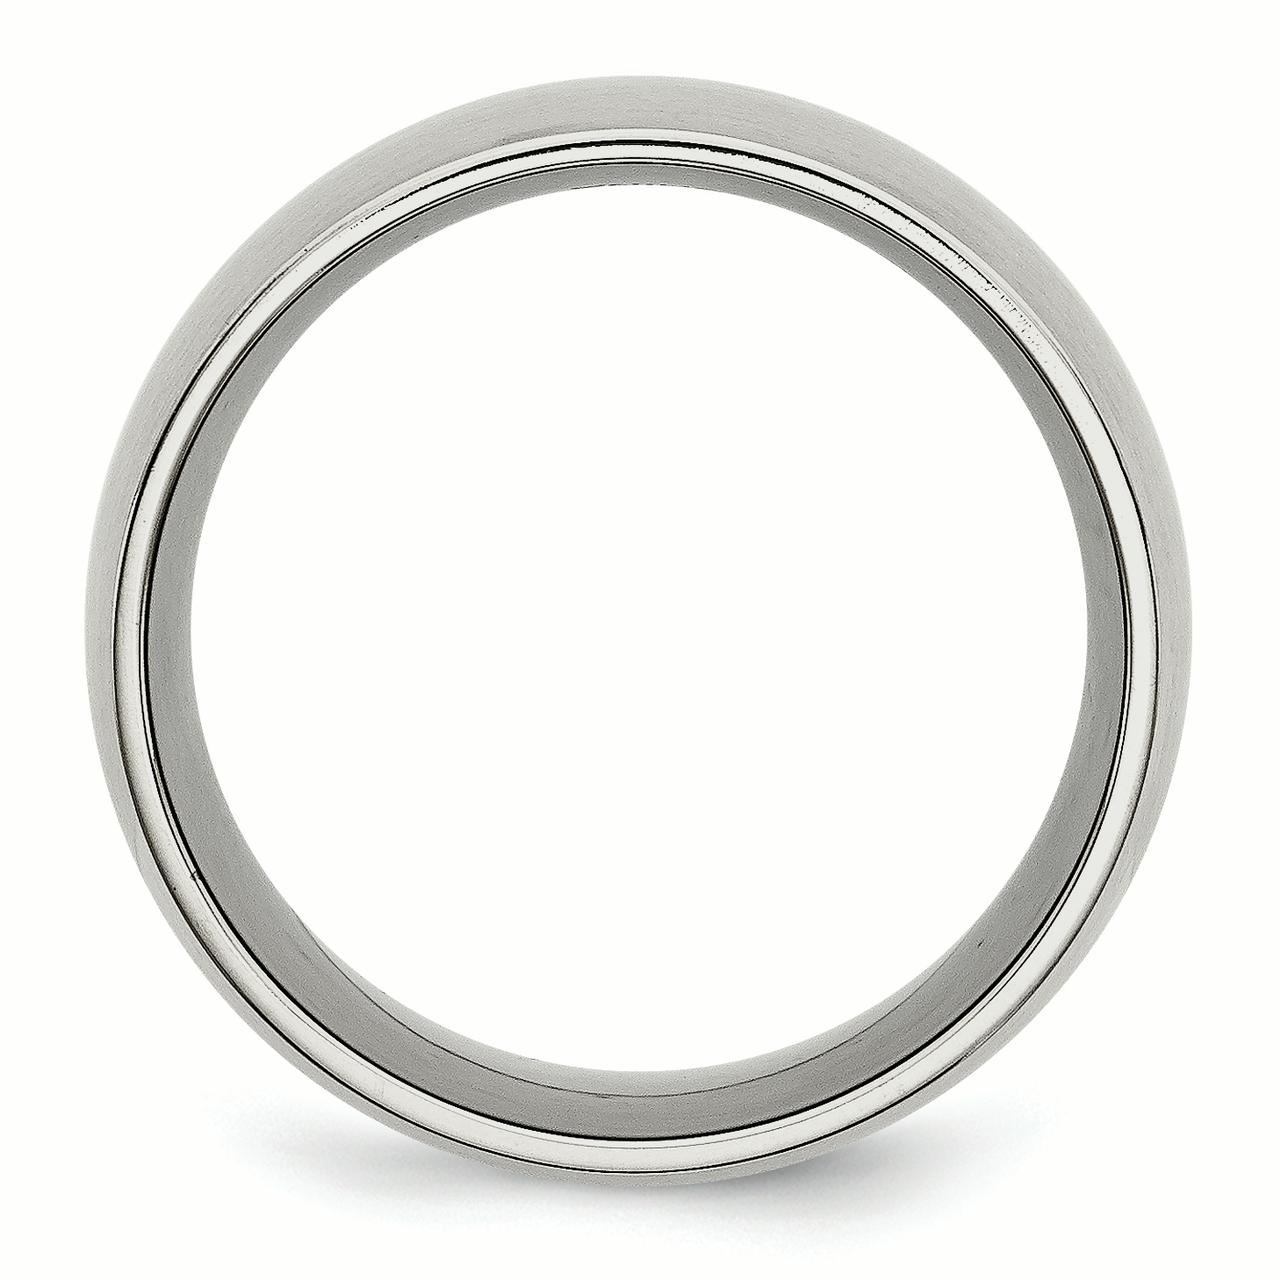 Stainless Steel 12mm Brushed Wedding Ring Band Size 10.00 Classic Domed Fashion Jewelry Gifts For Women For Her - image 4 of 6